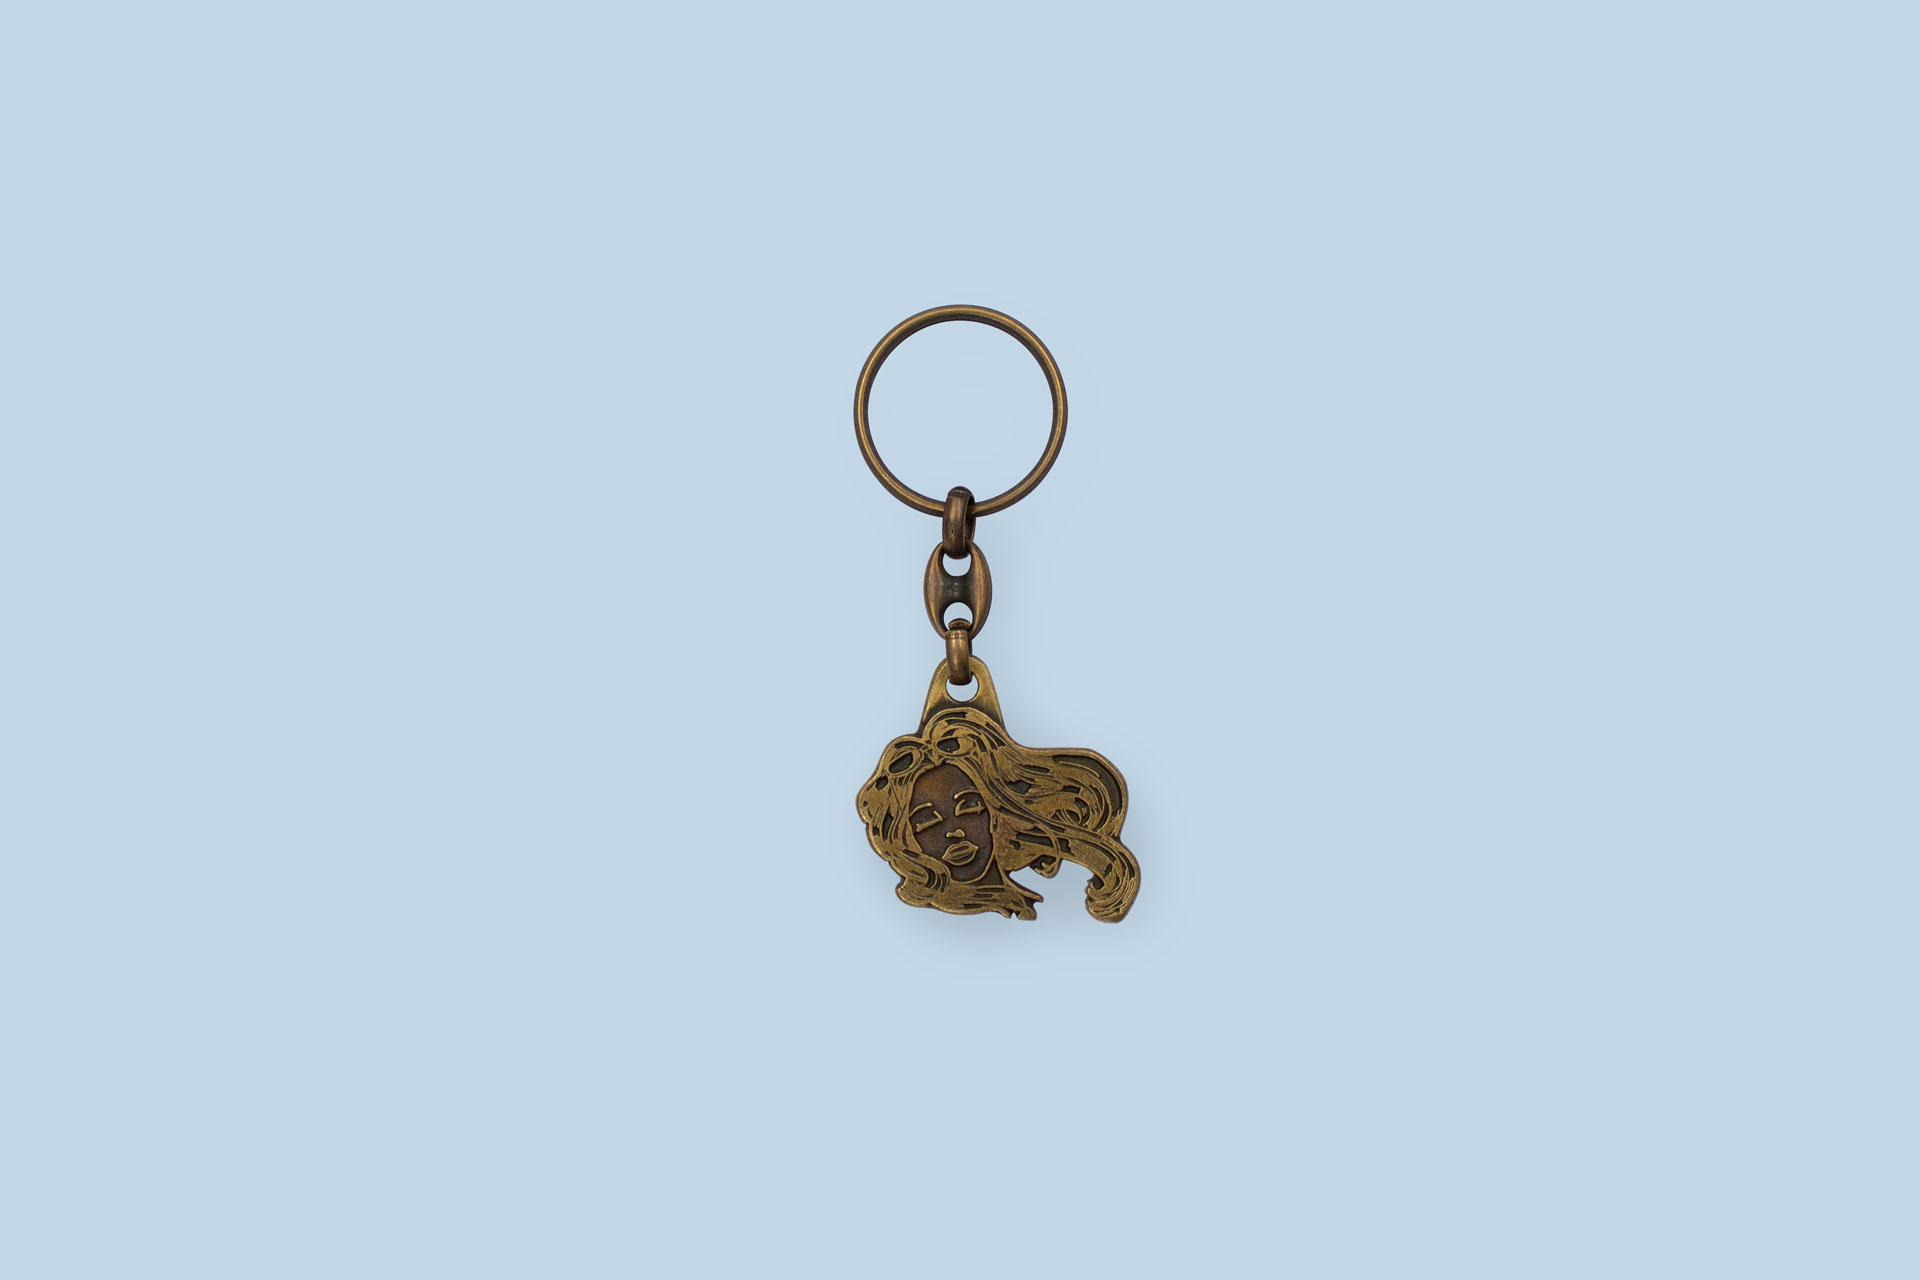 Brass-colored plated enamel Keychain